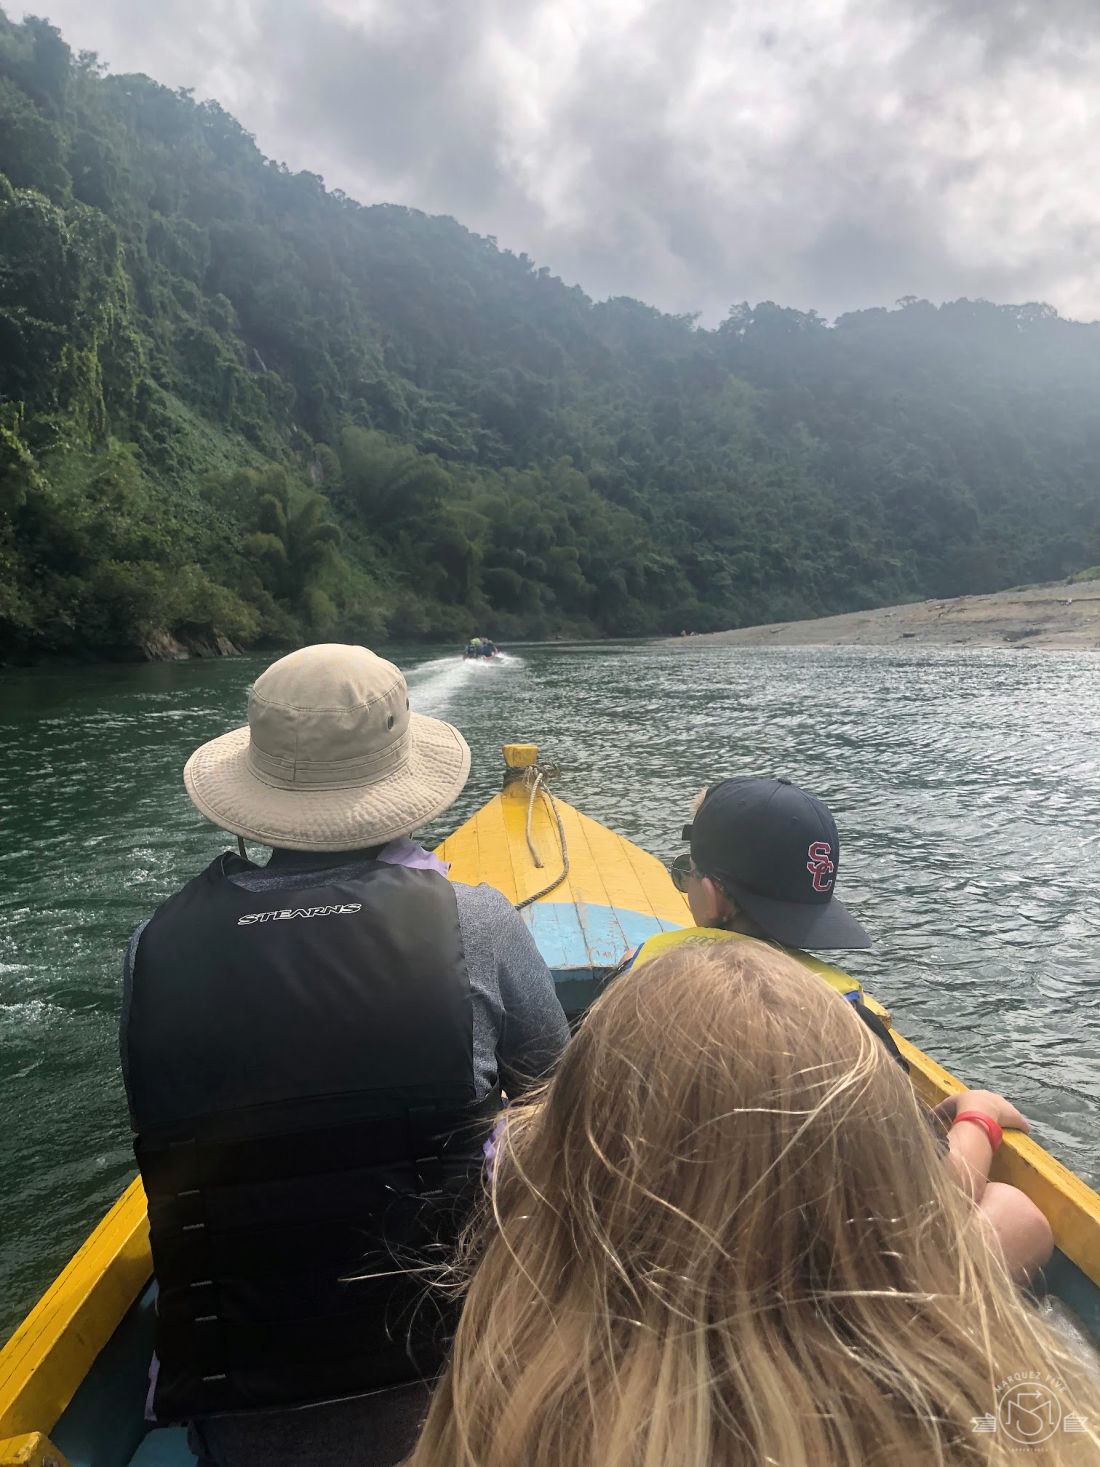 Heading up the Navua River in a longtail boat.